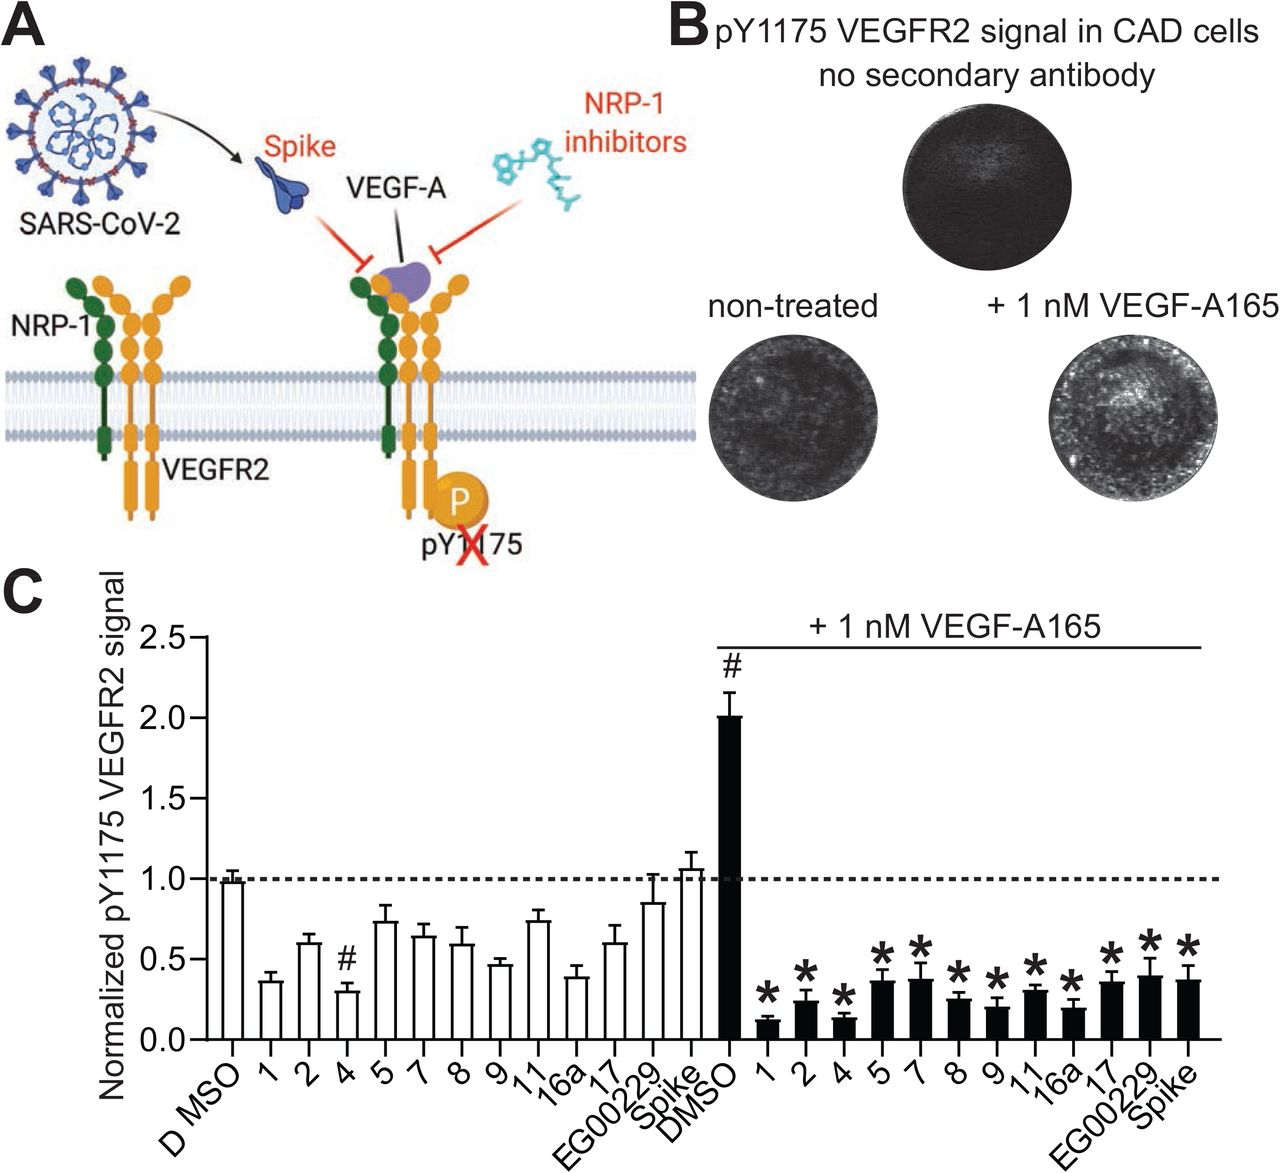 Screening of NRP-1/VEGF-A165 inhibitors by in cell western. (A) schematic of VEGF-A triggered phosphorylation of VEGF-R2. Screening of NRP-1/VEGF-A165 inhibitors by in-cell Western. Cathecholamine A differentiated (CAD) cells were grown in 96 well plates. Cells were treated with the NRP-1/VEGF-A165 inhibitors at 12.5 µM or SARS-CoV-2 Spike (100 nM) in combination with 1nM VEGF-A165 as indicated. Cells were stained for pY1175 VEGFR2 as a marker of the activation of the pathway by VEGF-A165. (B) representative micrographs showing the lack of signal in controls with omission of the secondary antibody. Phosphorylated VEGFR2 was increased by the addition of 1 nM VEGF-A165 on the cells. (C) Bar graph showing the levels of pY1175 VEGFR2 normalized to the quantity of cells in each well. # p